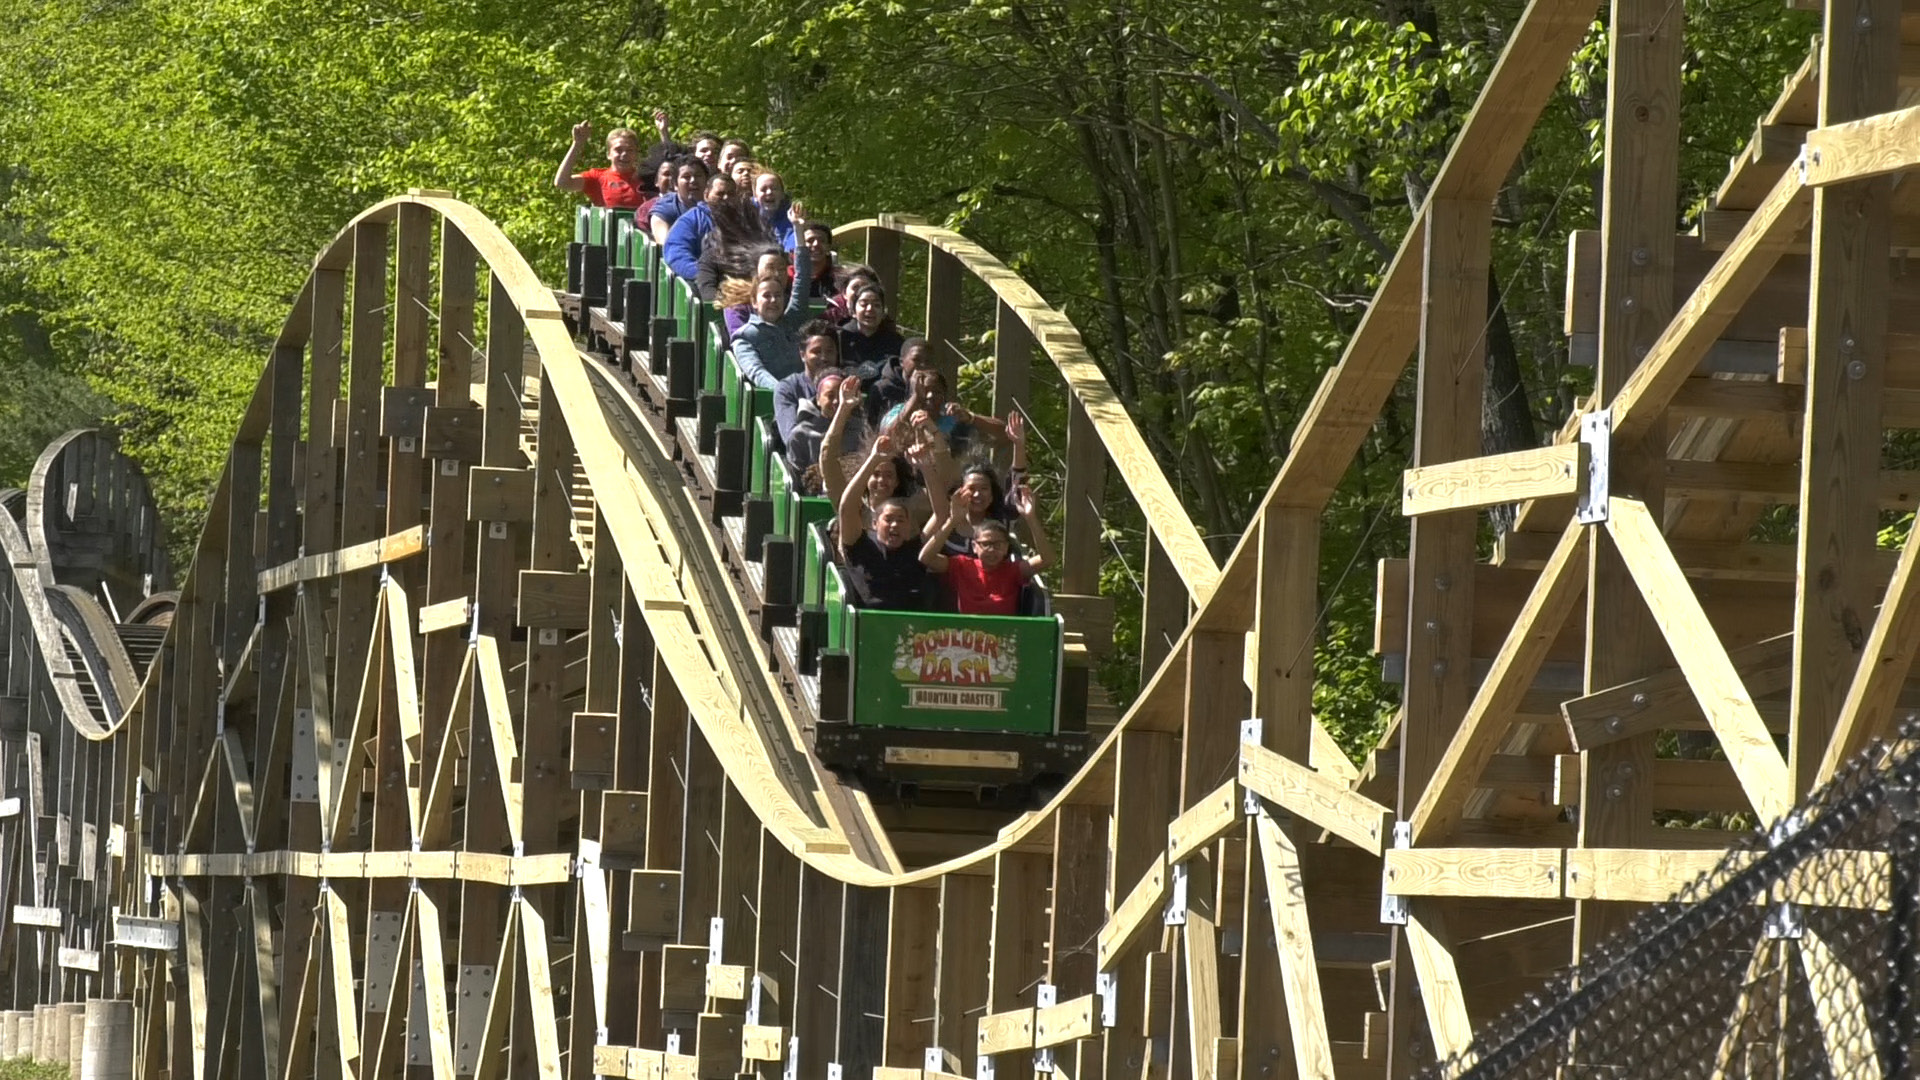 Patrons enjoy Boulder Dash at Lake Compounce on Friday, May 12, 2017. | Pete Paguaga, Record-Journal